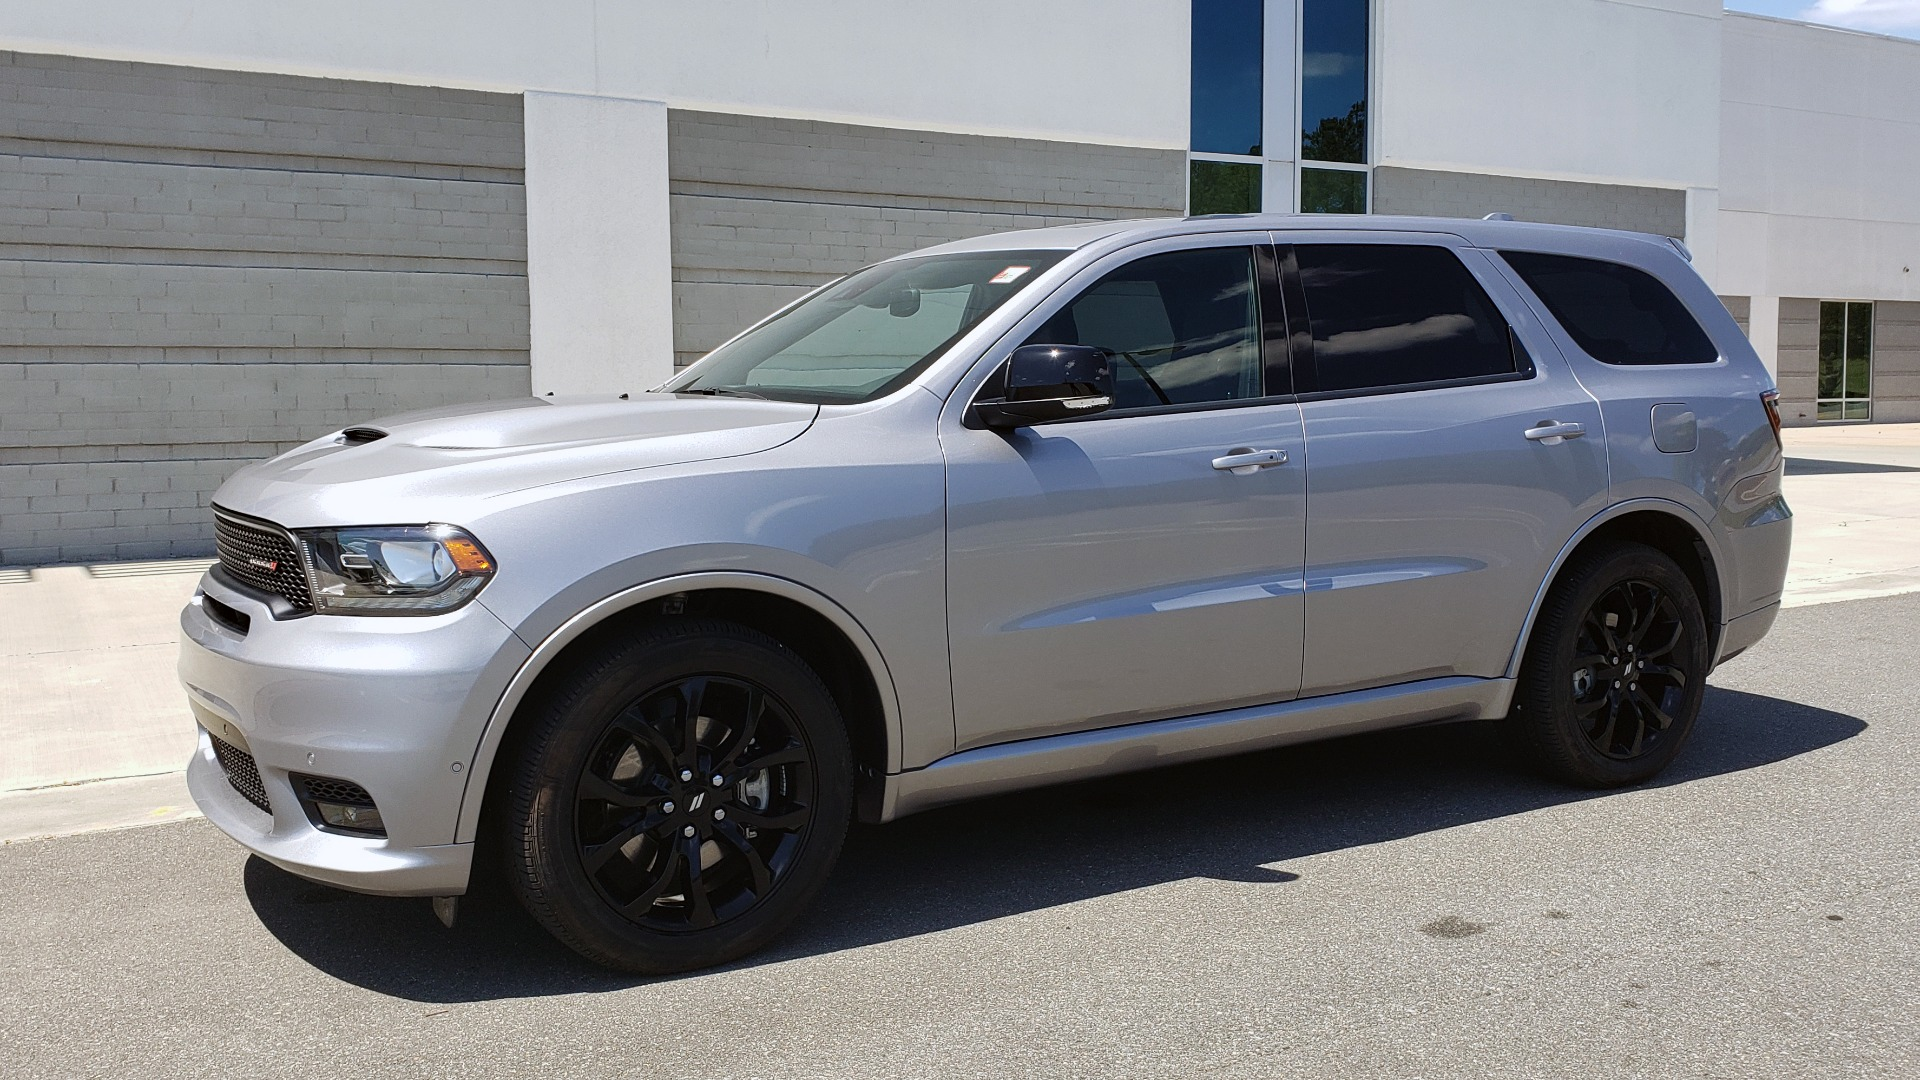 Used 2019 Dodge DURANGO R/T BLACKTOP AWD / TECH / ADAPT CRUS / TOW GROUP / SUNROOF / REARVIEW for sale Sold at Formula Imports in Charlotte NC 28227 5